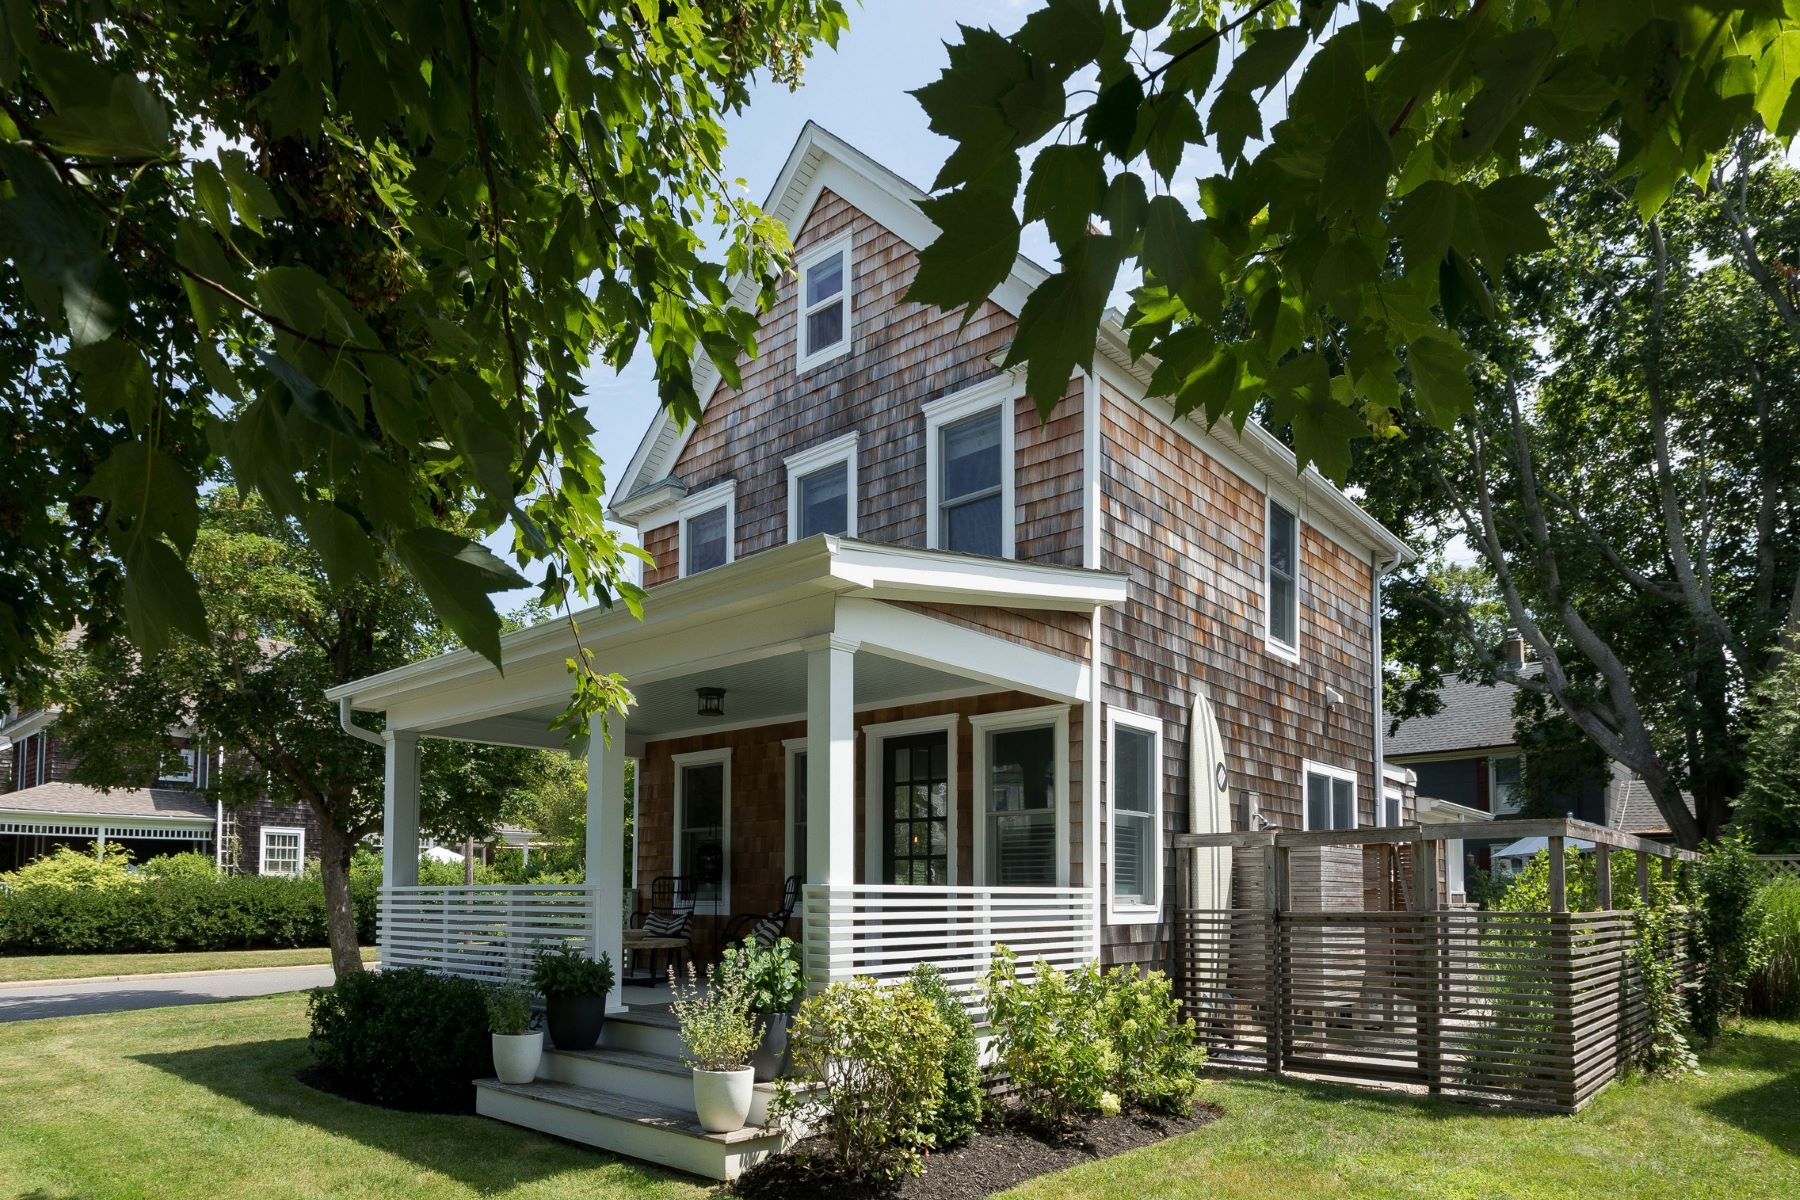 Single Family Homes for Active at Greenport 228 6th St Greenport, New York 11944 United States